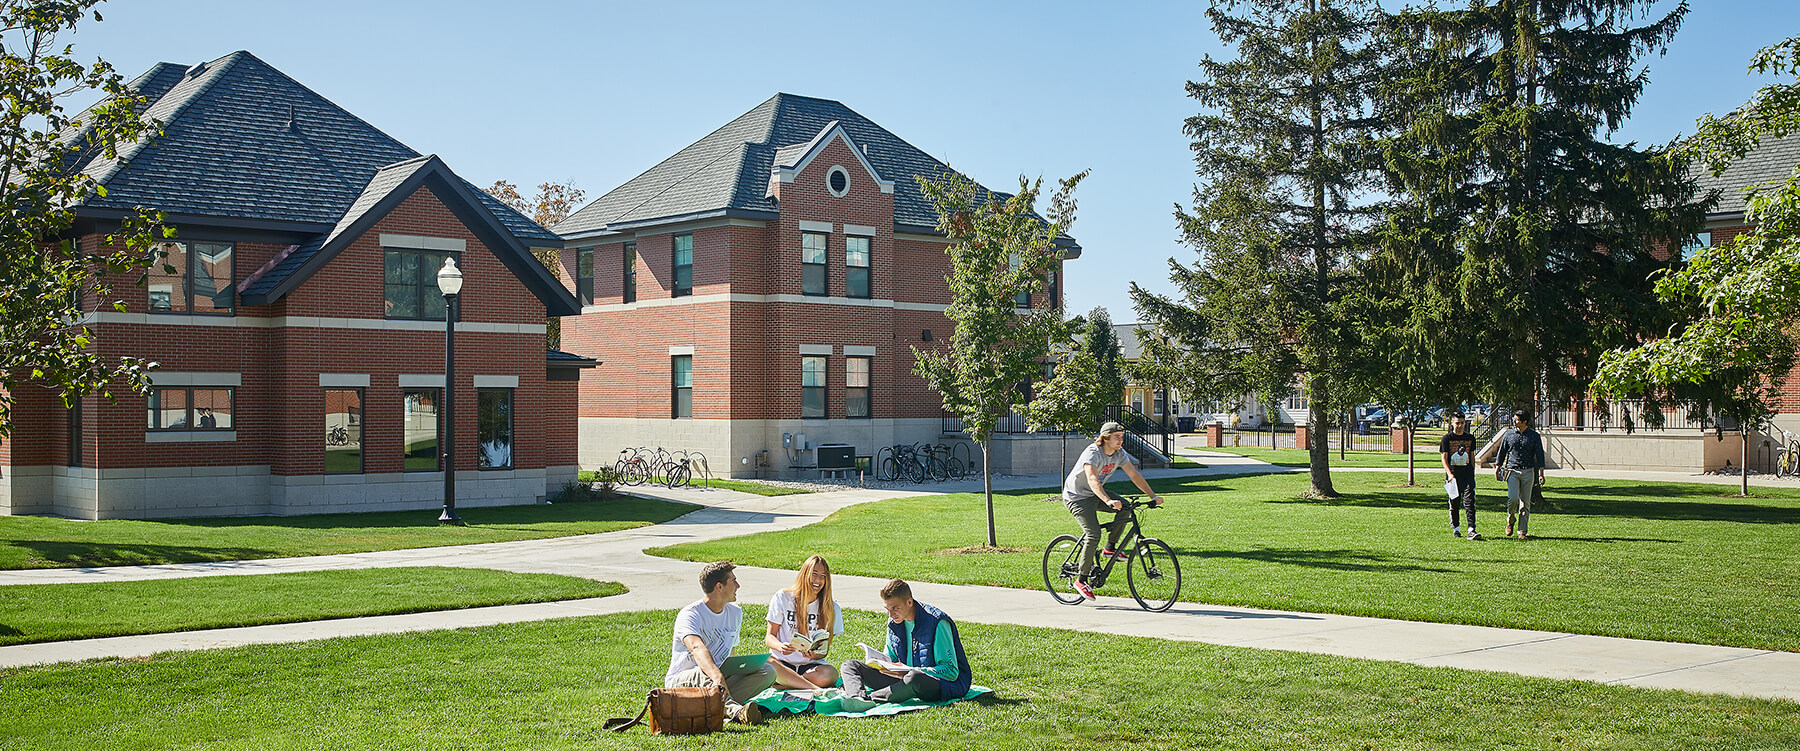 Hope College Student Housing lawn